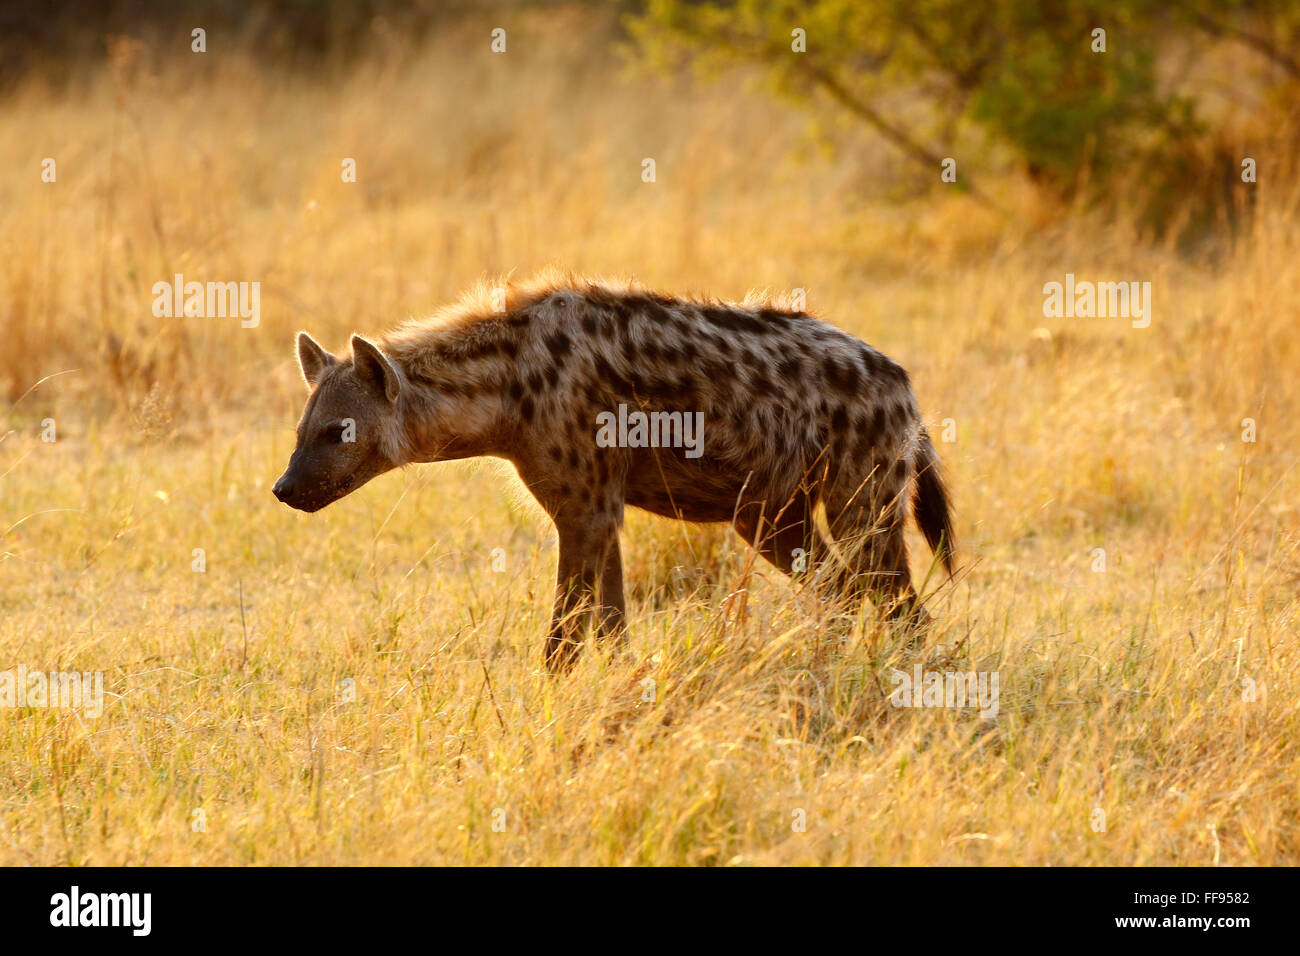 List of Synonyms and Antonyms of the Word: laughing hyenas - photo#15